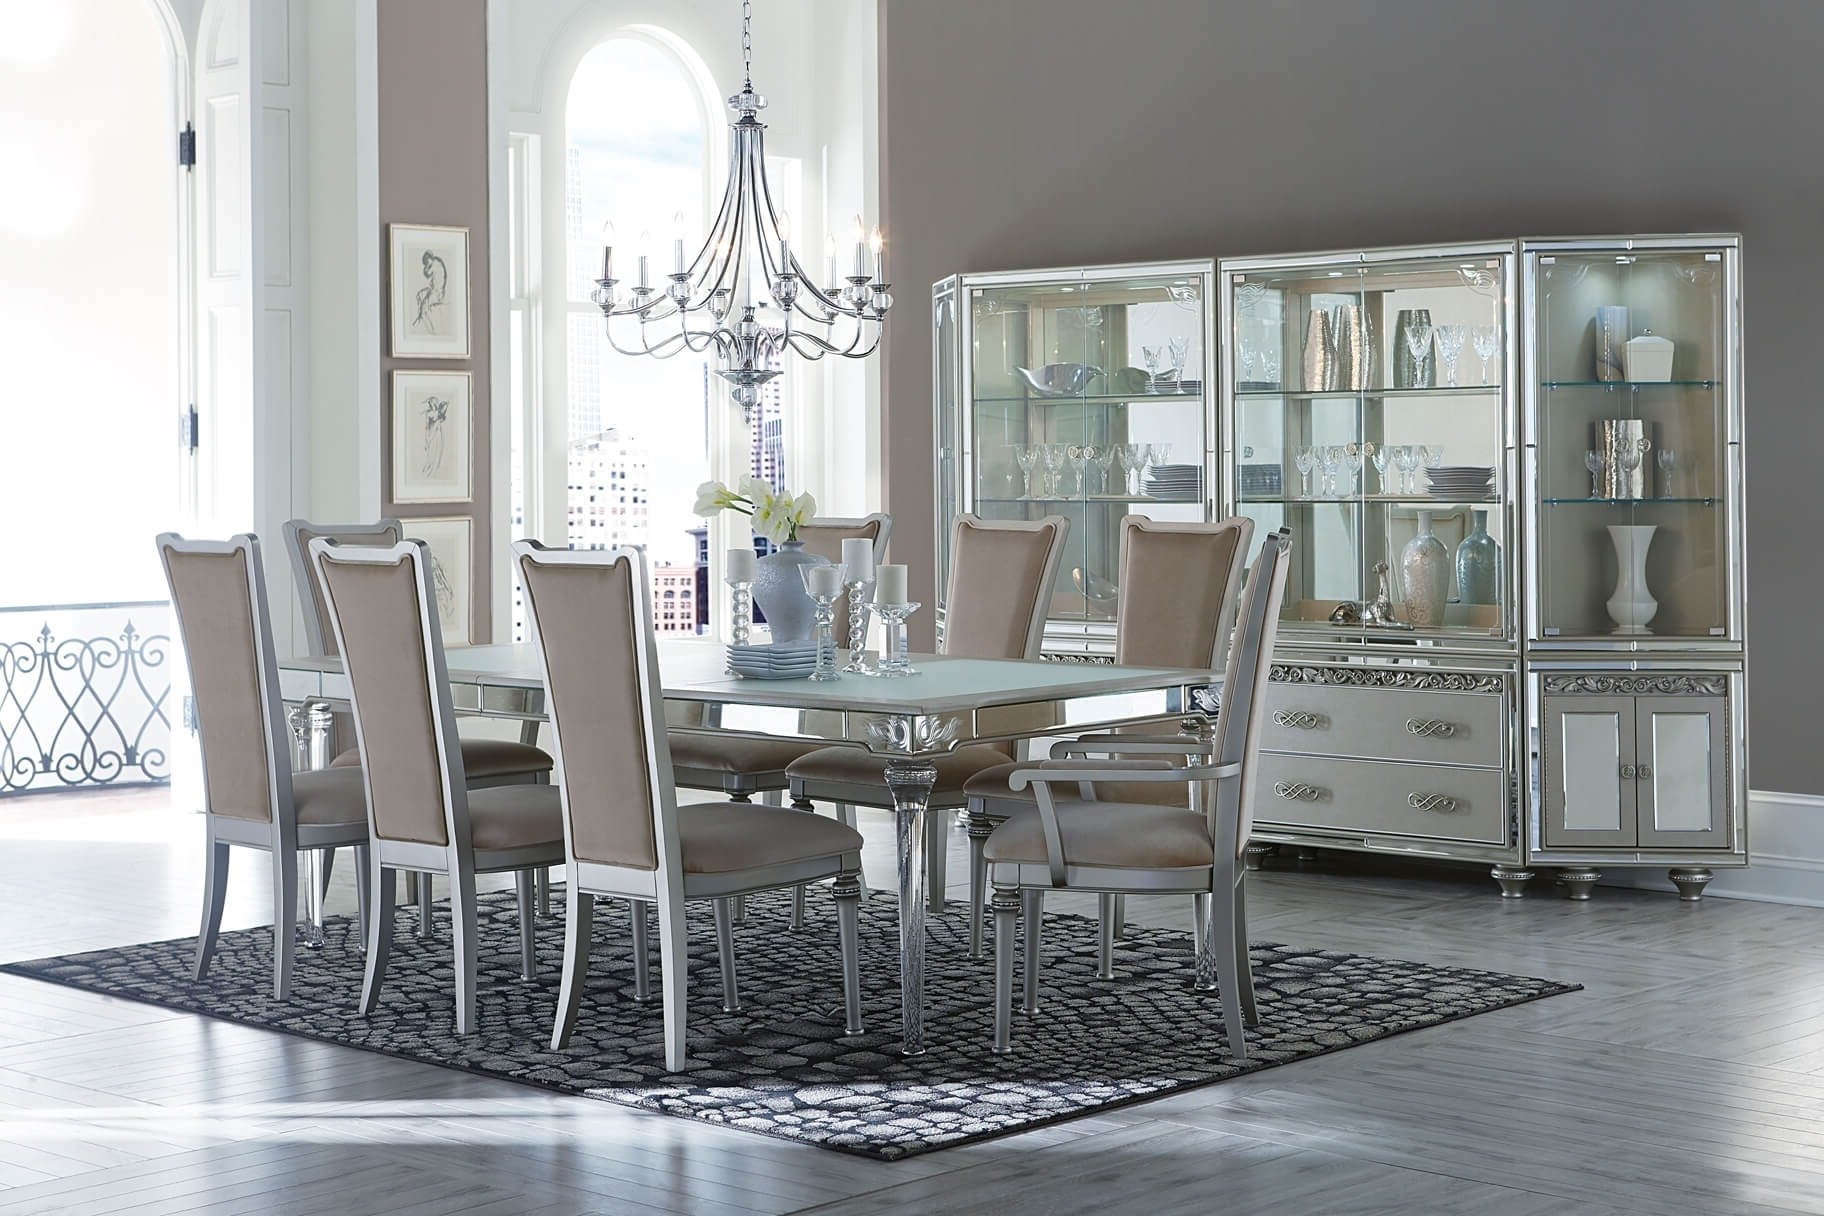 Well Liked Crystal Dining Tables Within Michael Amini Bel Air Park Crystal Dining Set – Usa Warehouse Furniture (View 23 of 25)